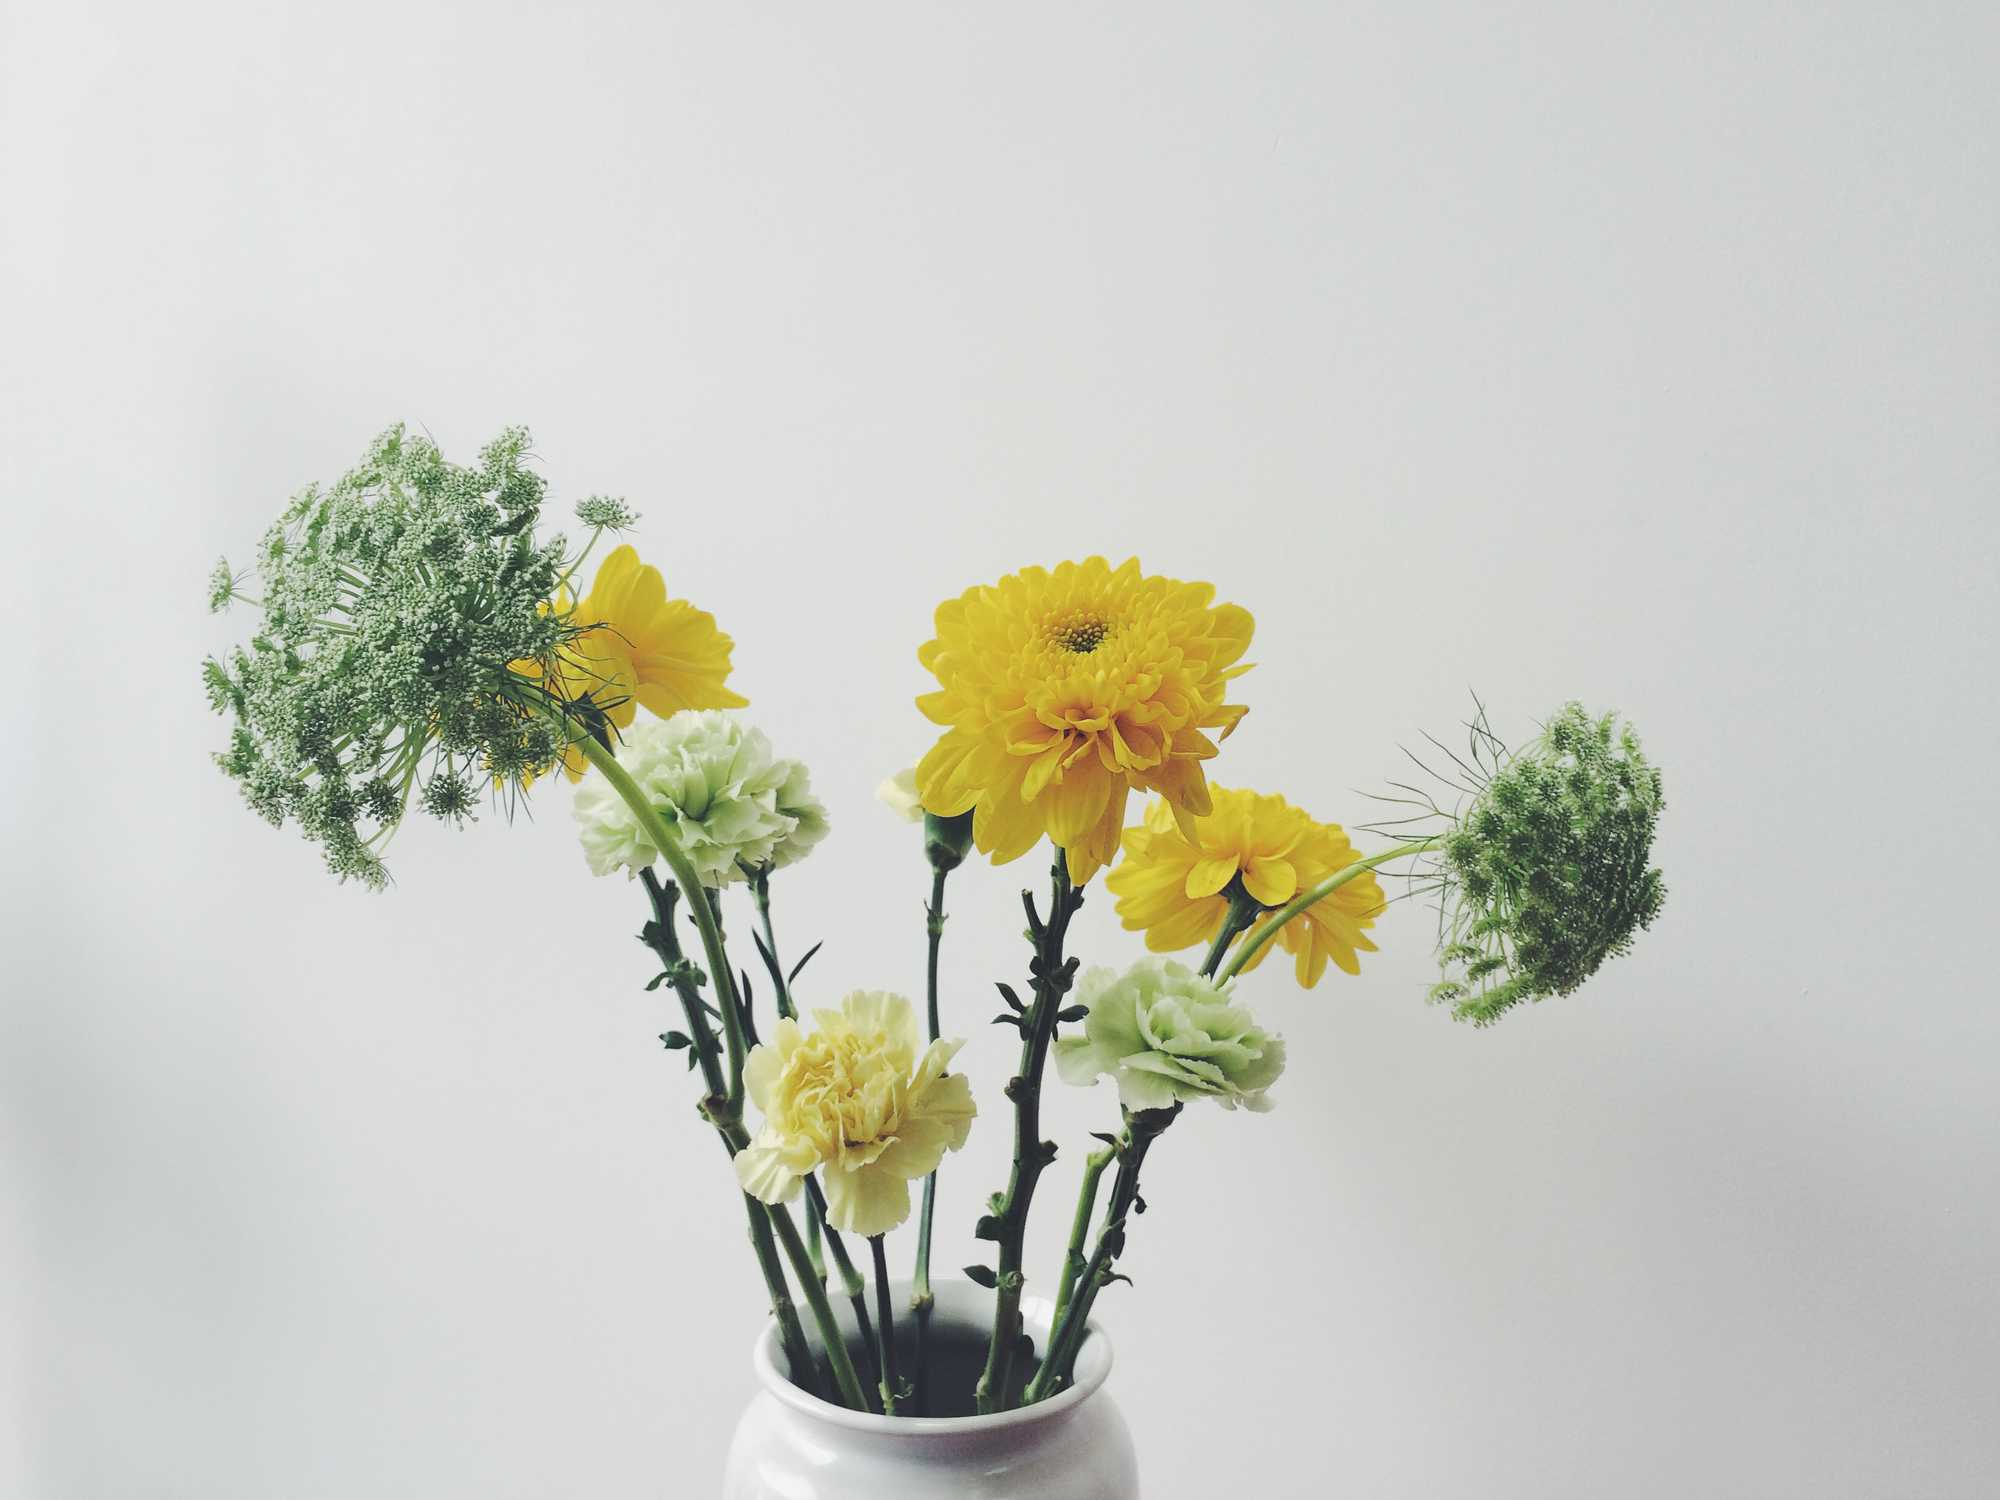 chrysant anjers dille paasboeket